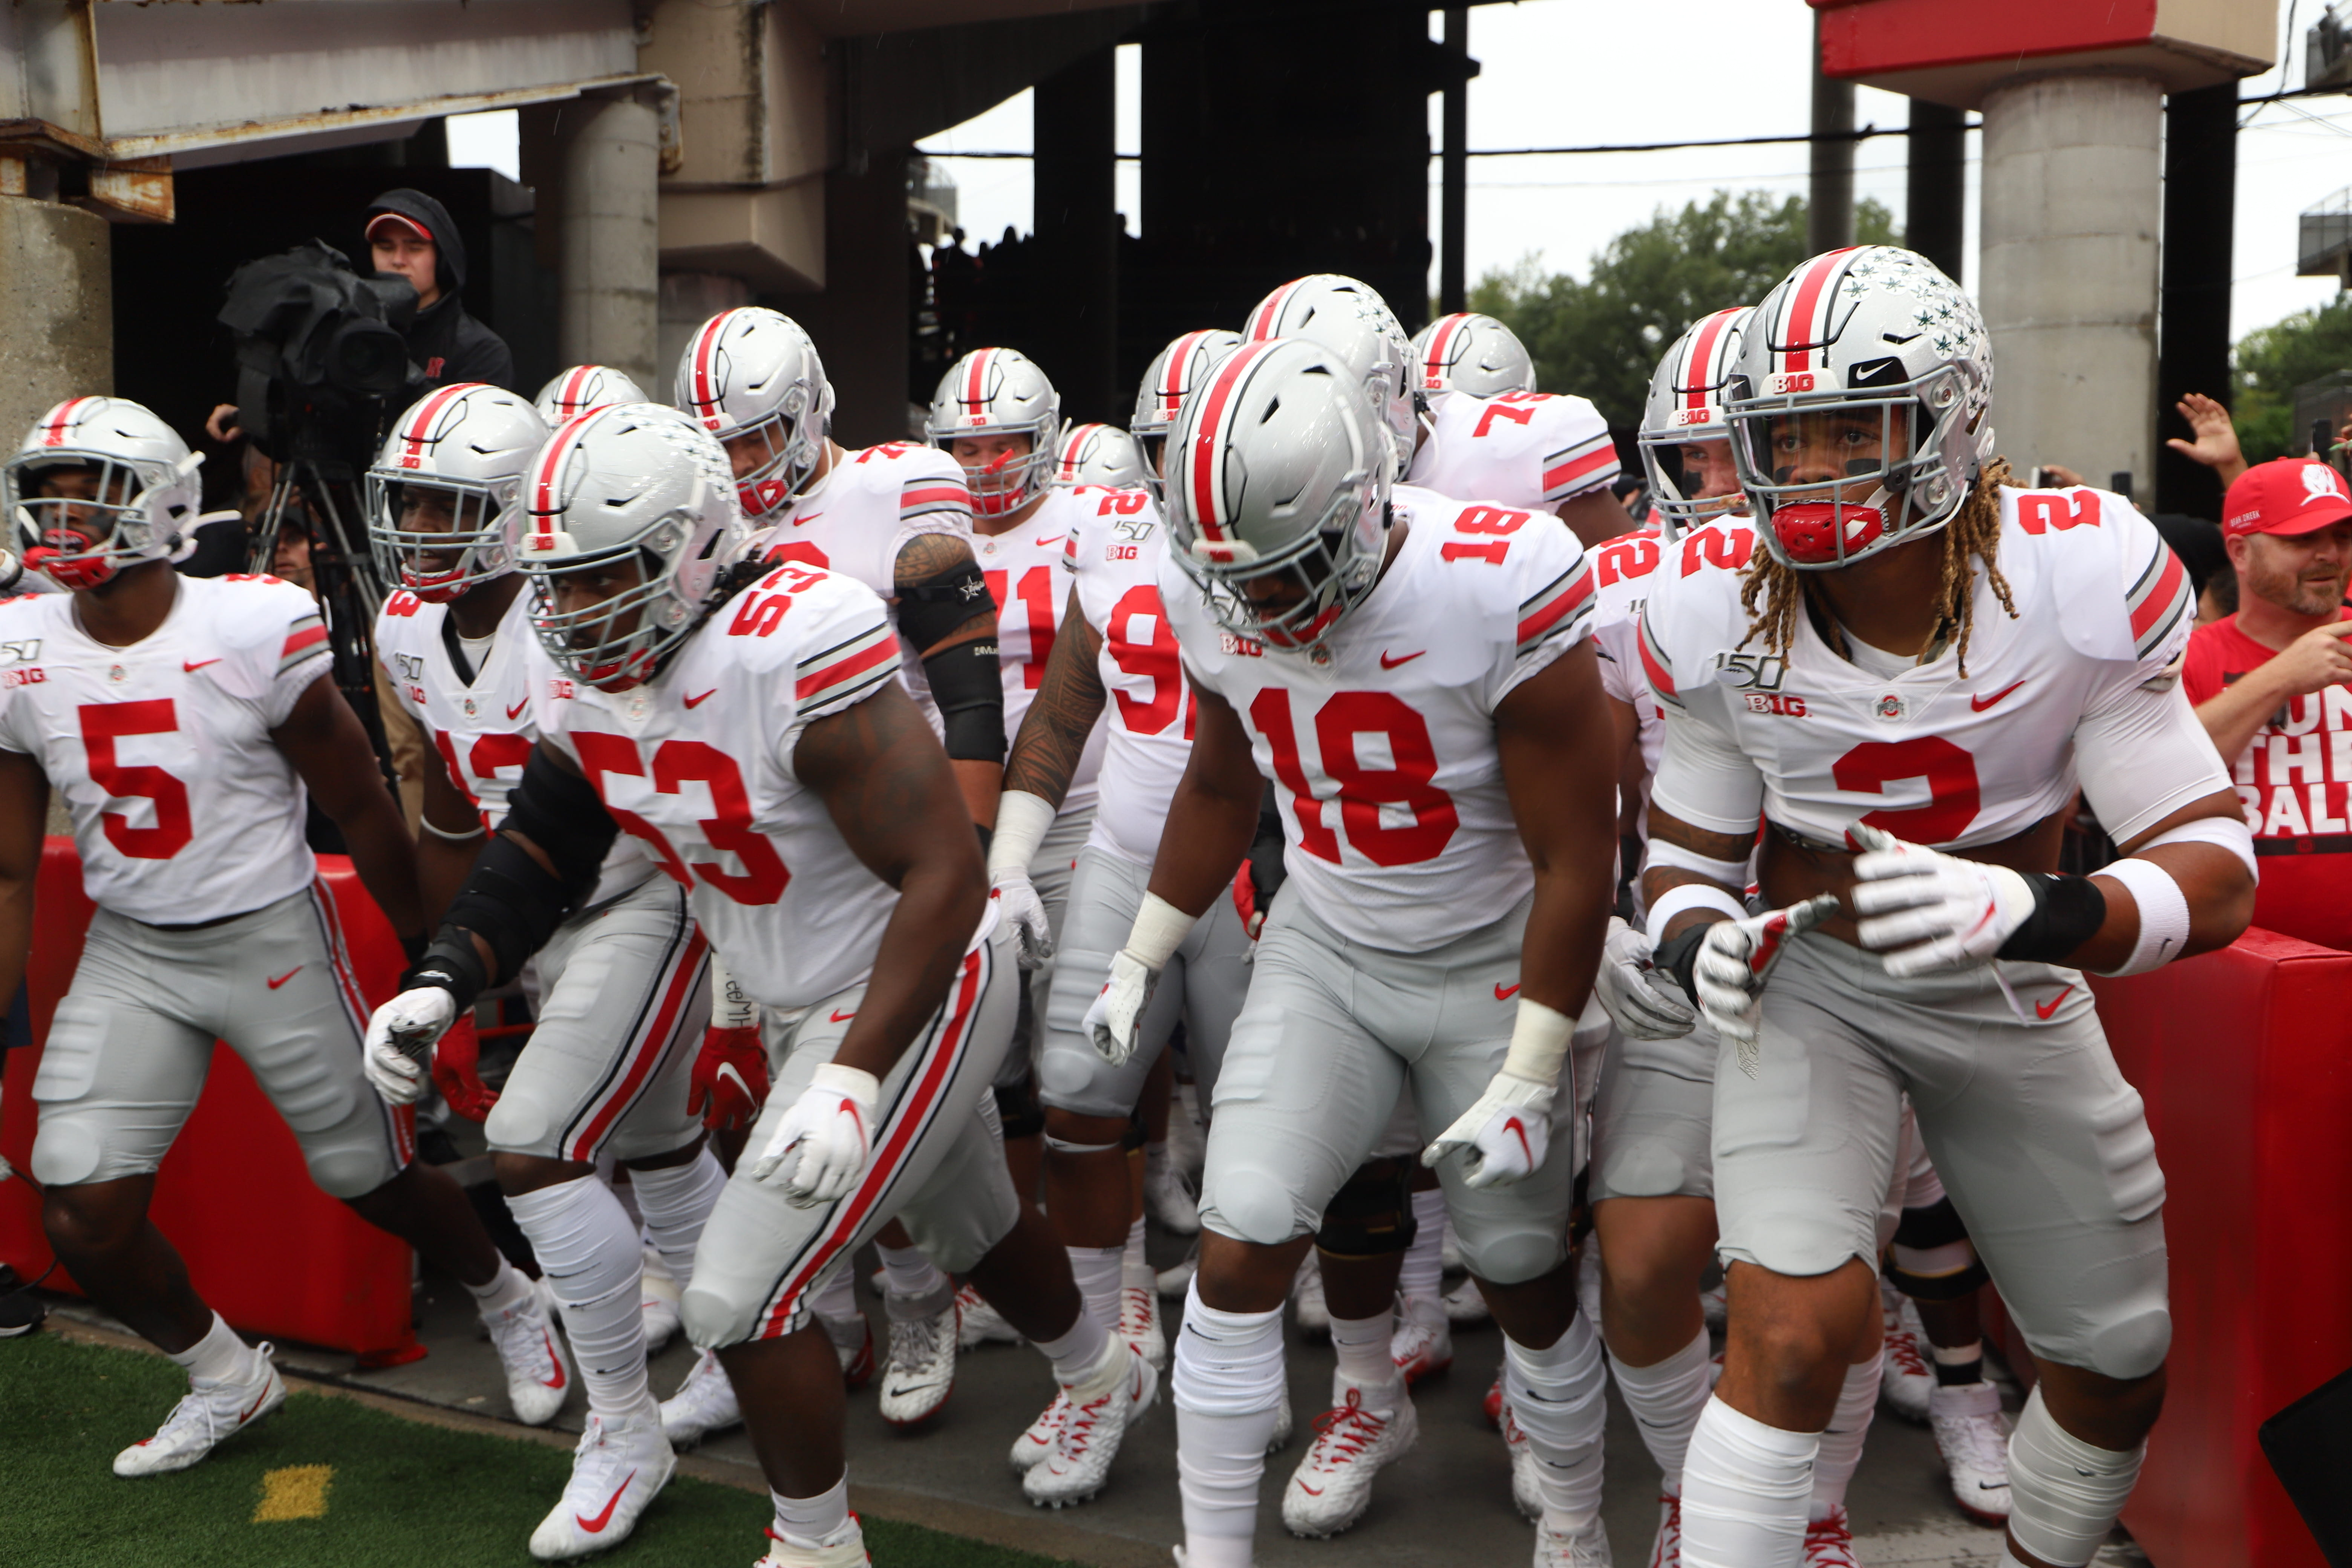 Ohio State football players run onto the field to warm up before the road game against Nebraska.